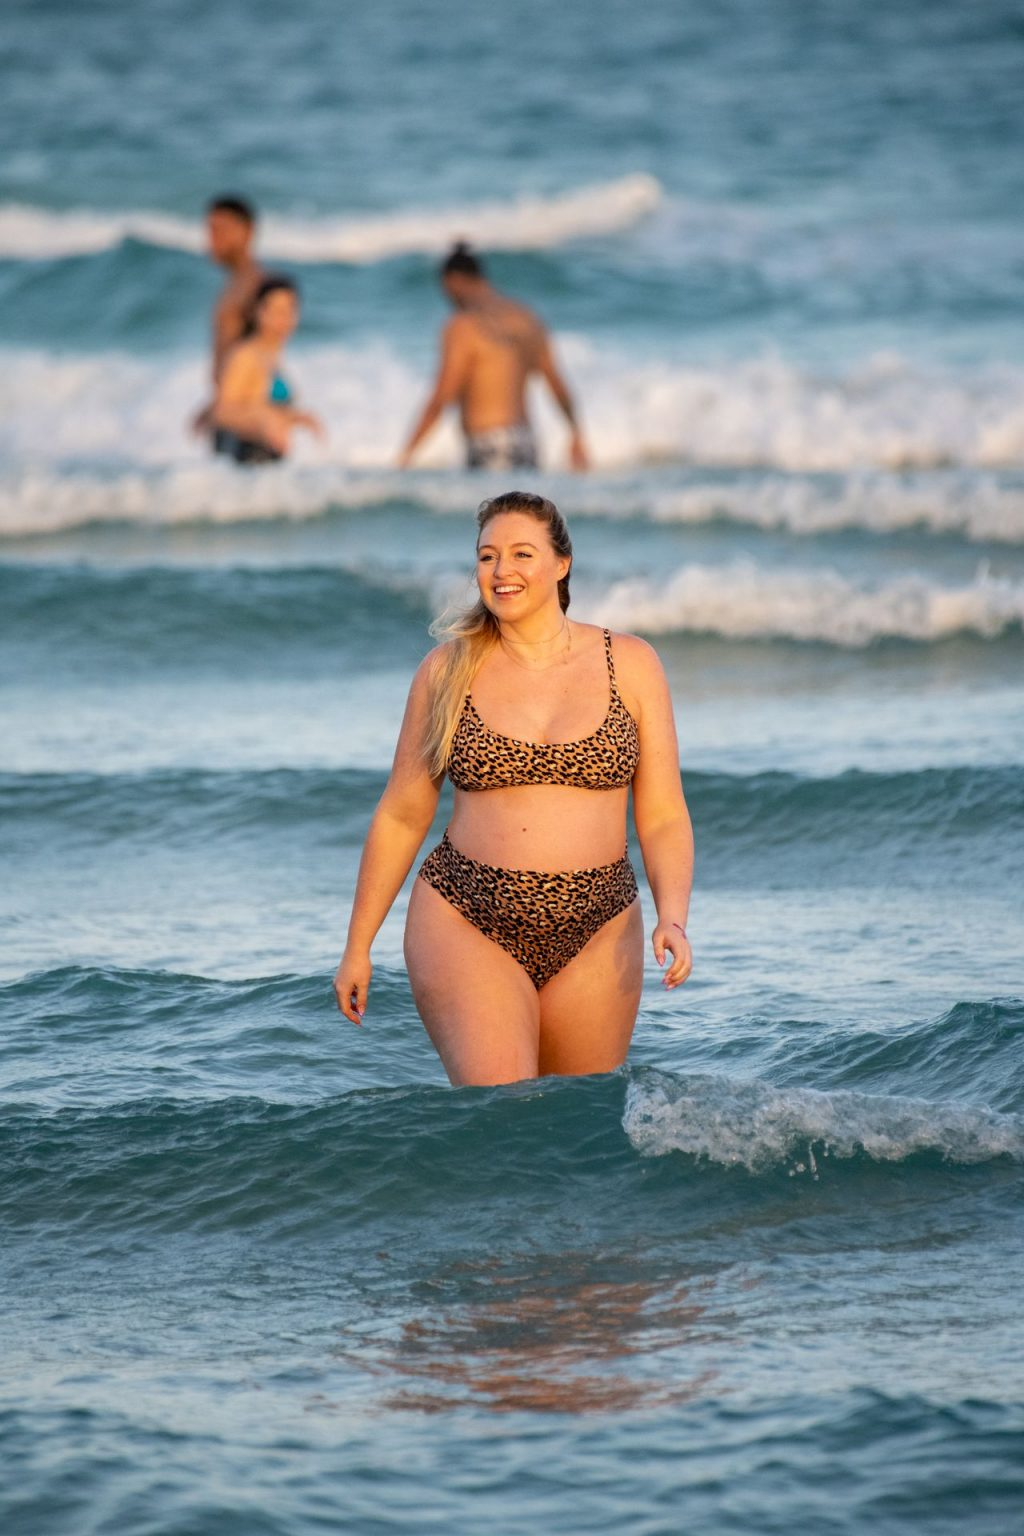 Iskra Lawrence Sexy The Fappening Blog 14 1024x1536 - Heavily Pregnant Model Iskra Lawrence Takes A Sunset Dip In Miami Beach (44 Photos)